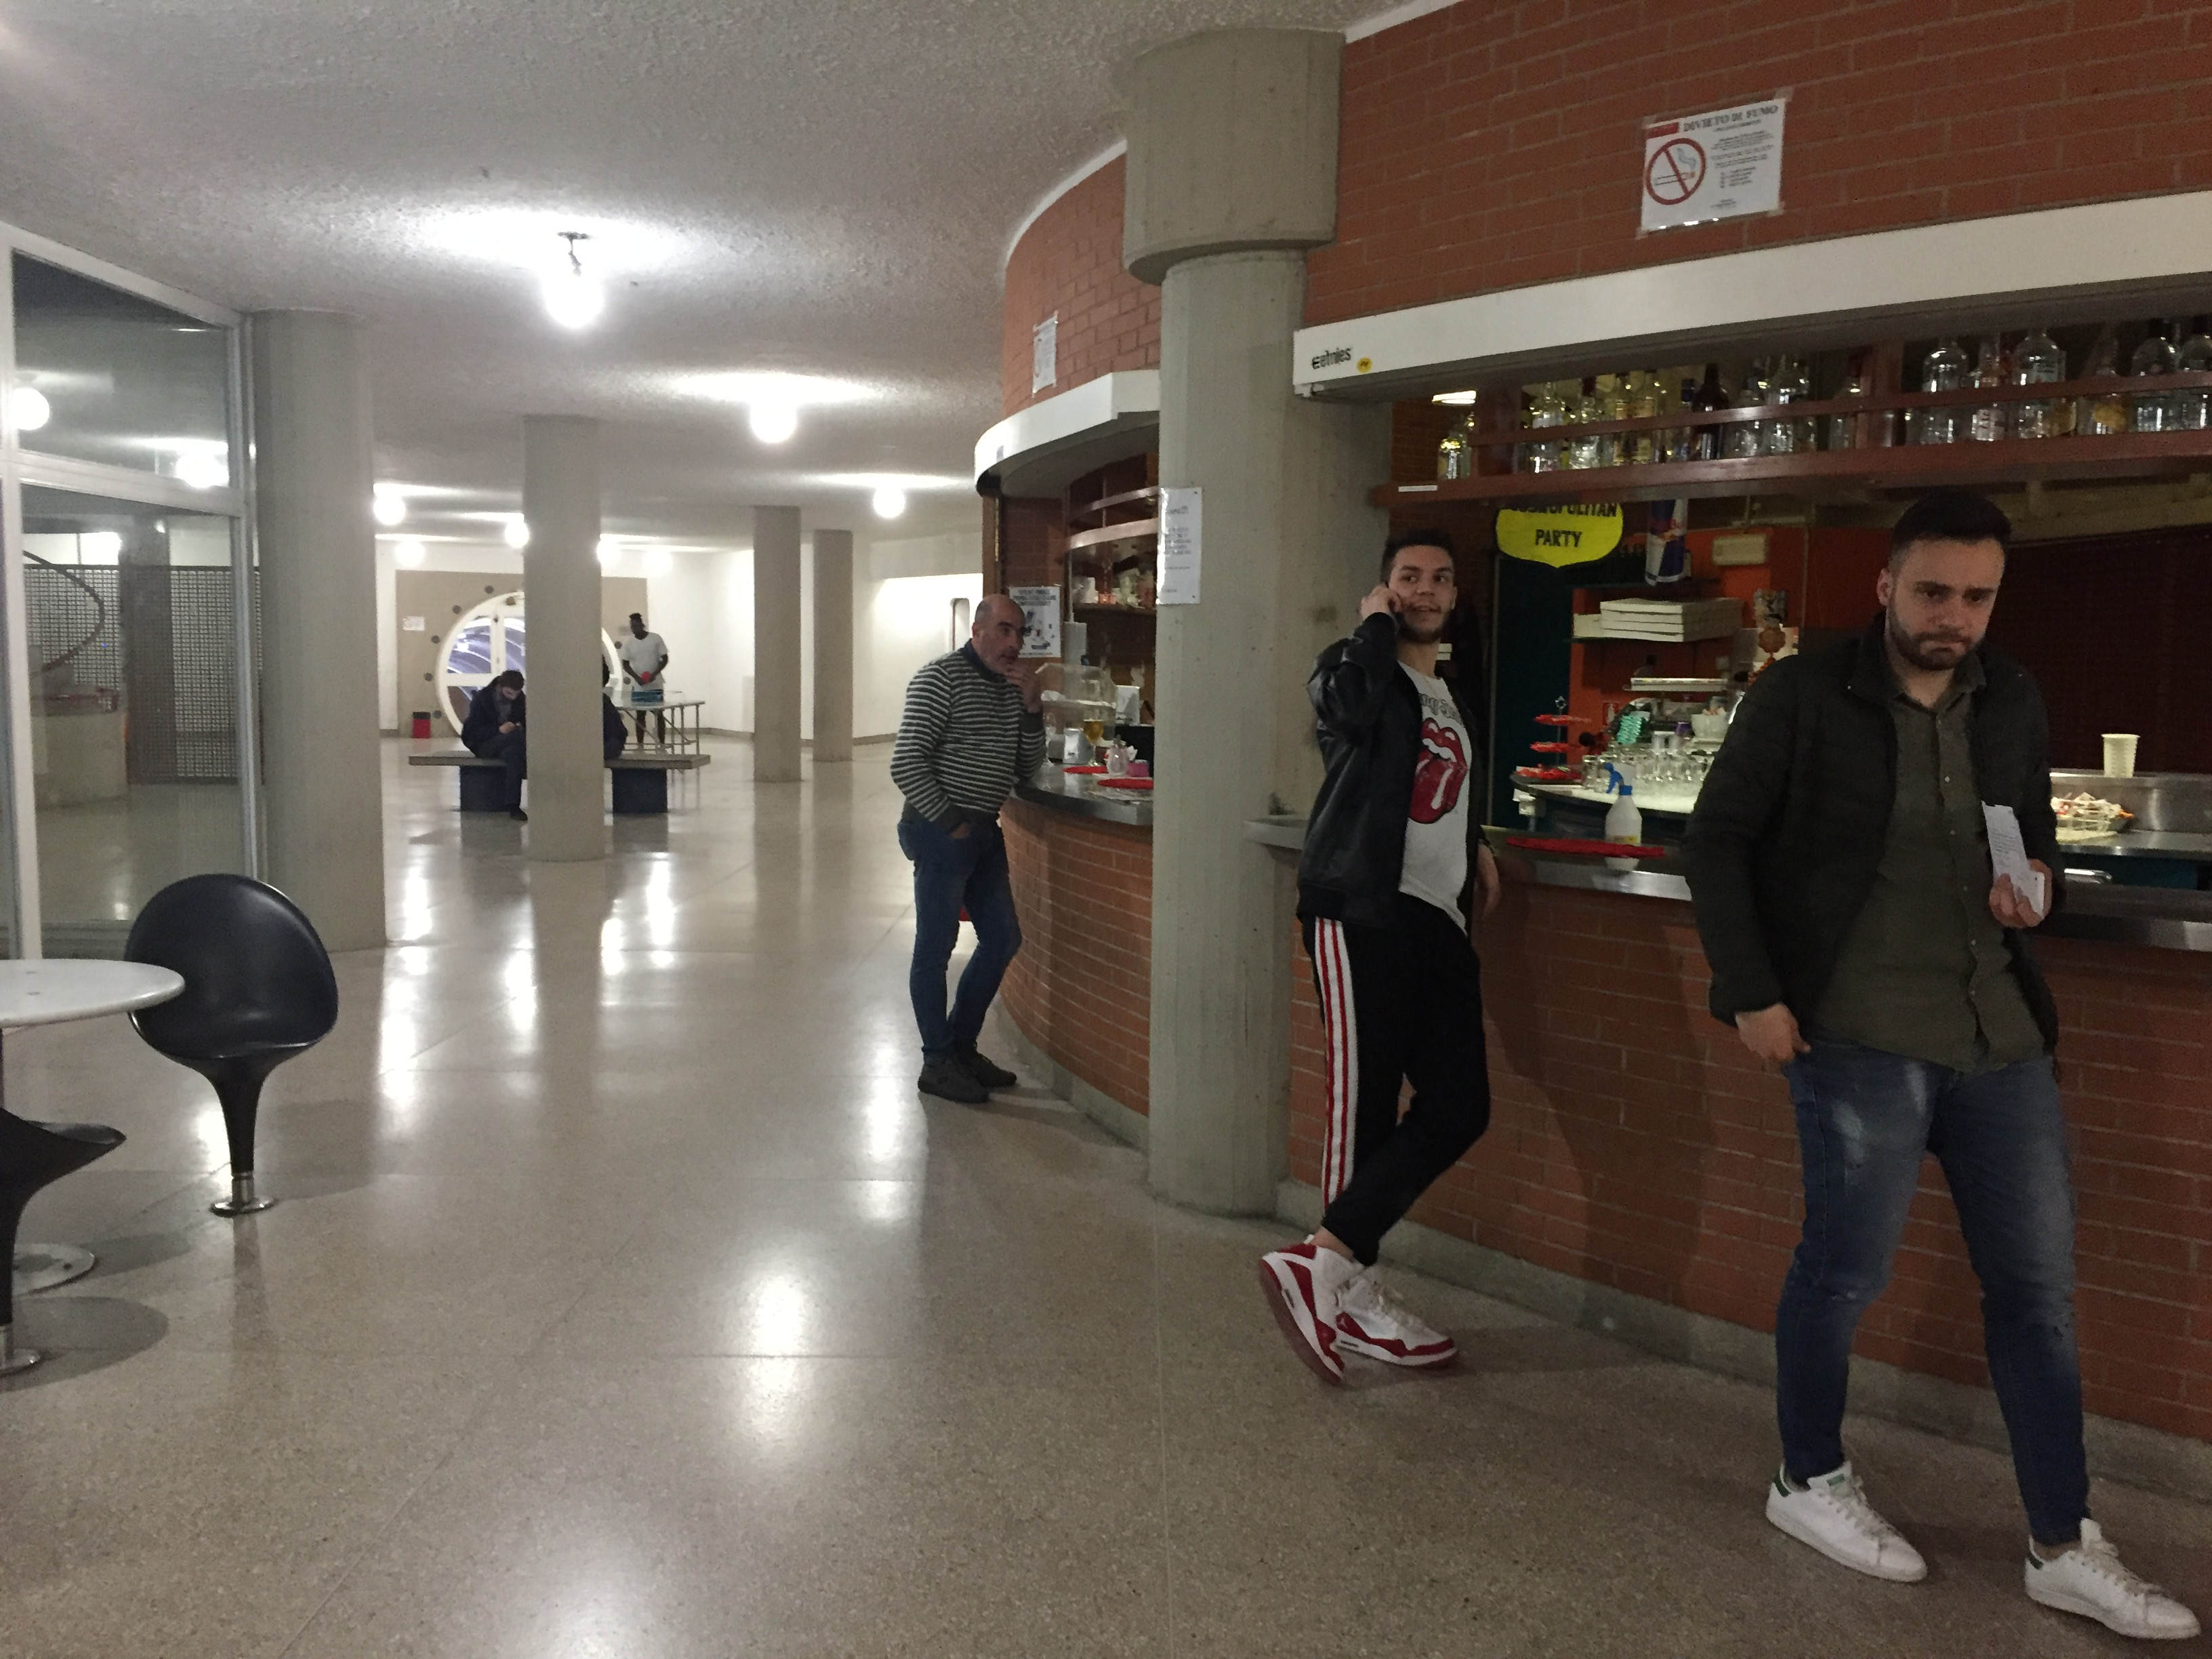 The bar outside the Mensa (cafeteria) is a wide social place where students can be found hanging out before and after meals. Photo by Bridget Hepworth